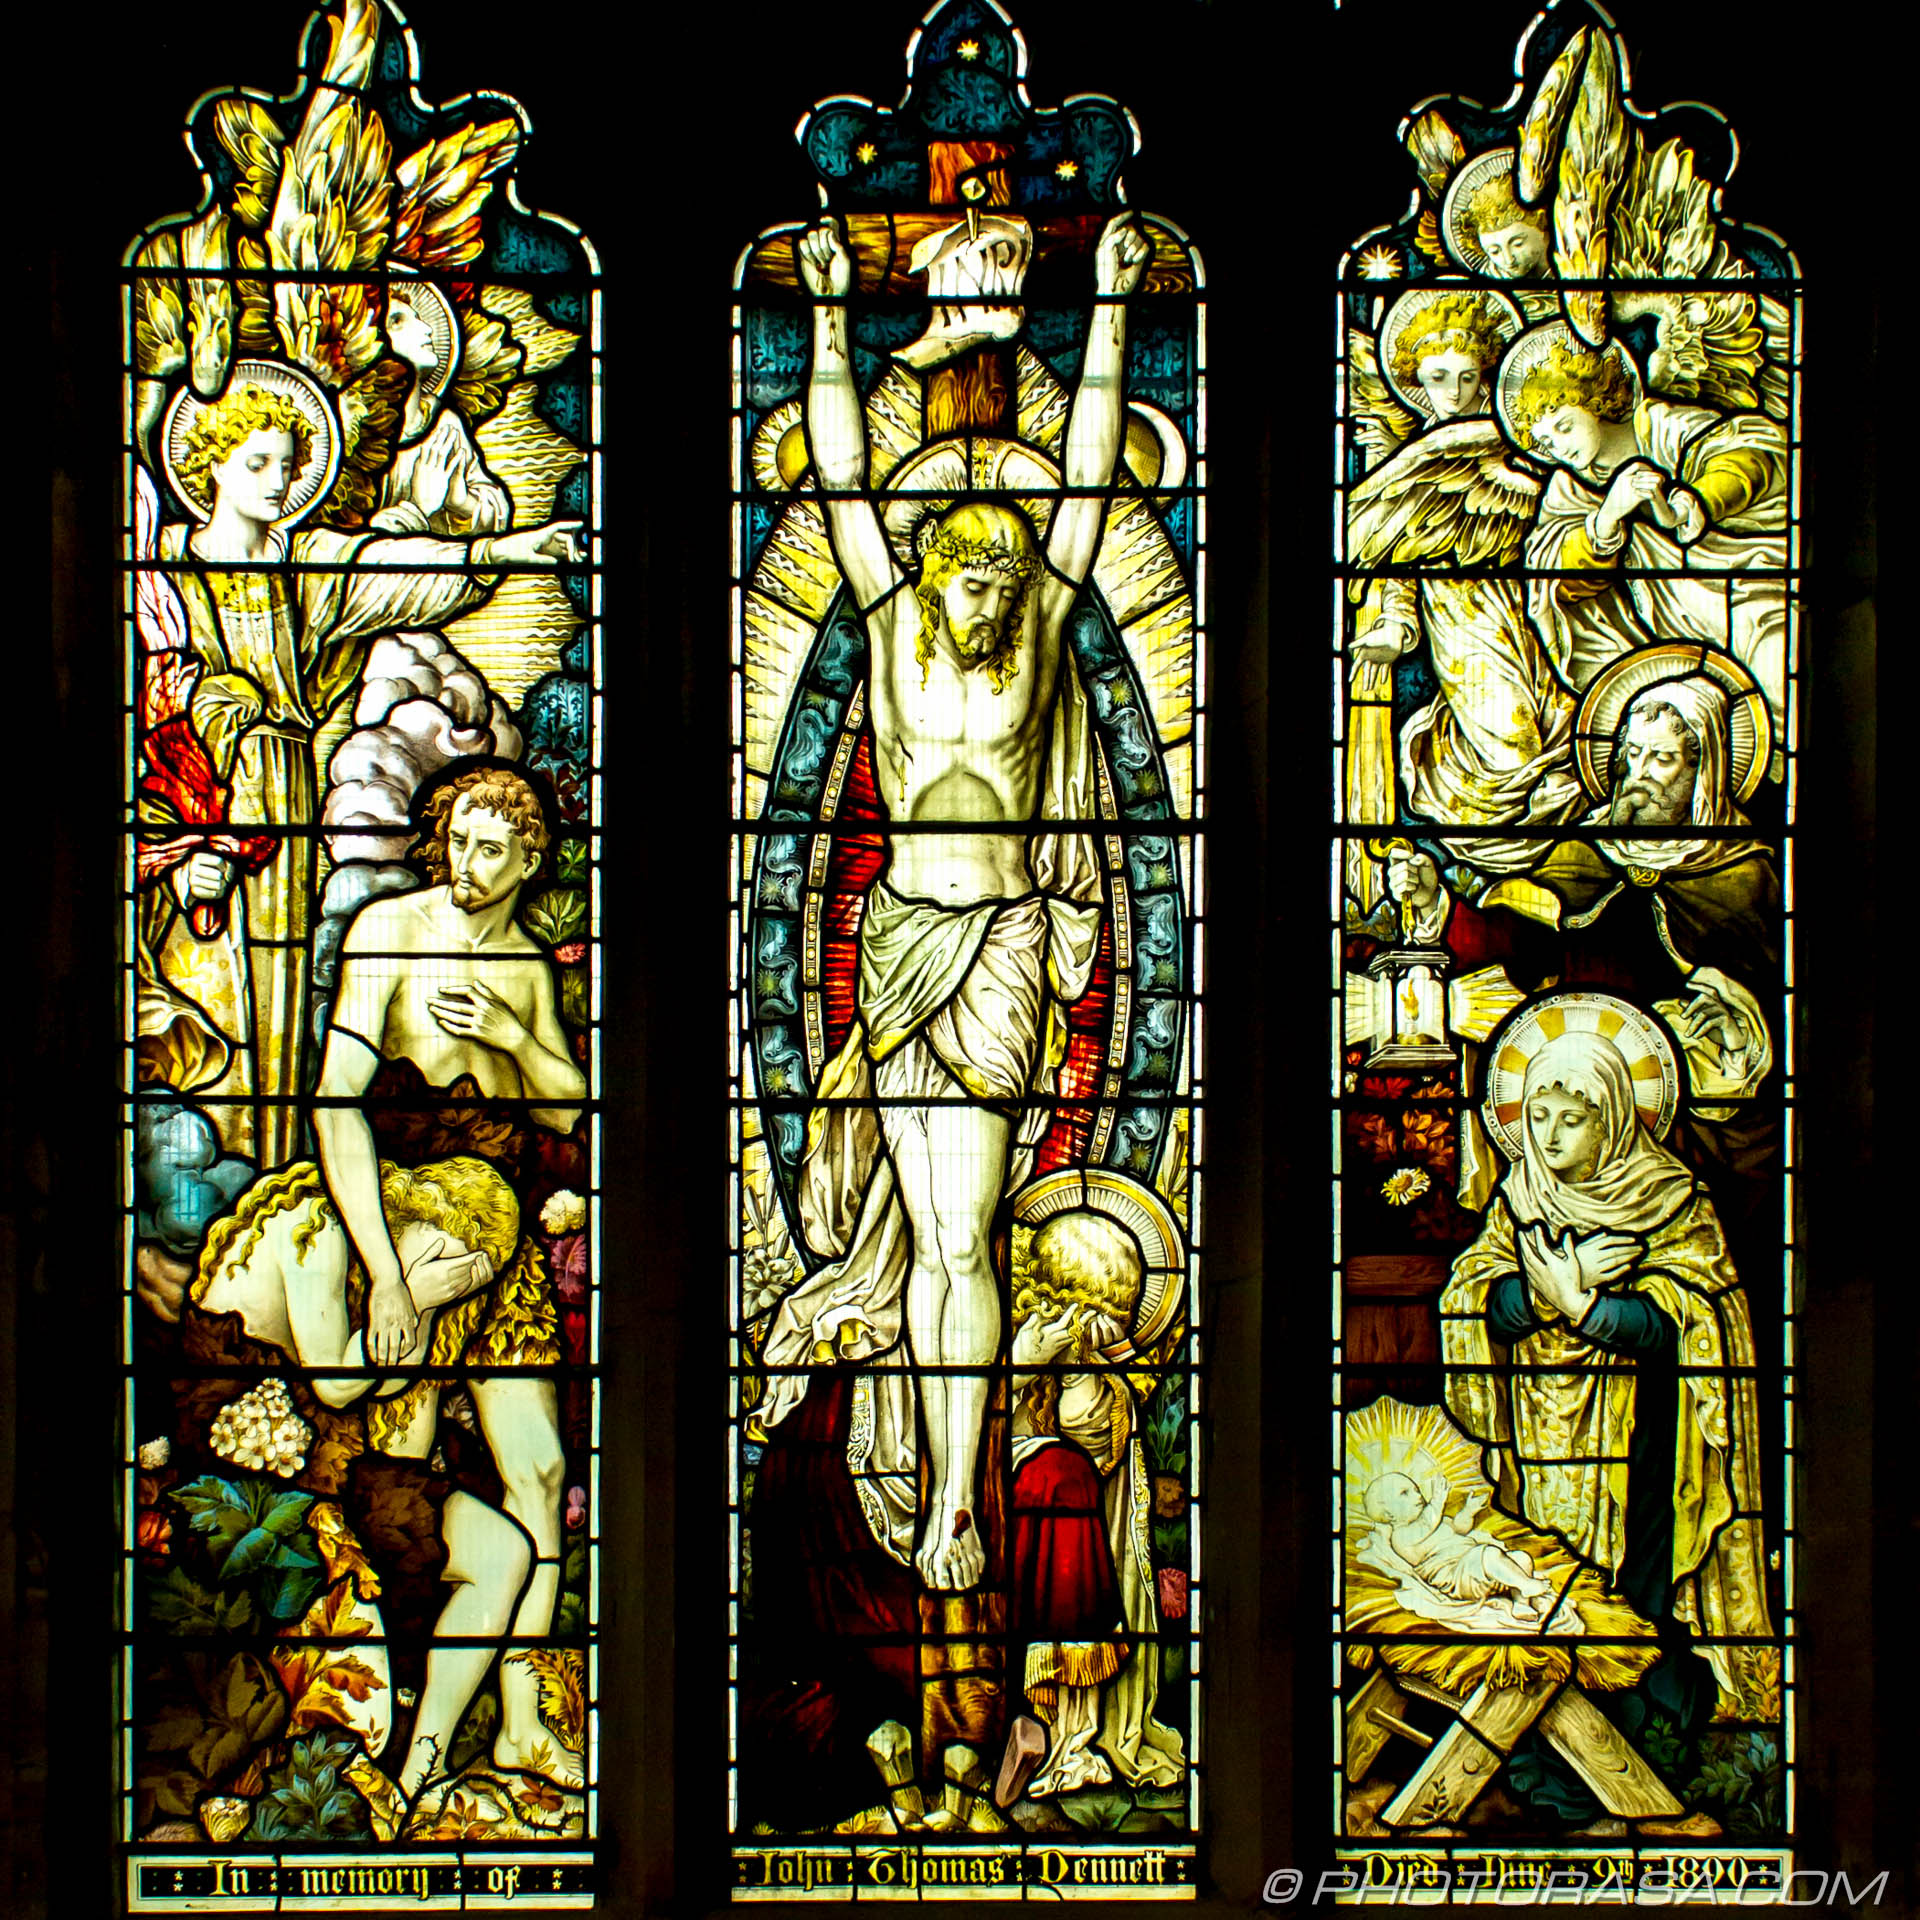 http://photorasa.com/st-dunstans-church-cranbrook/stained-glass-of-jesus-on-the-cross/